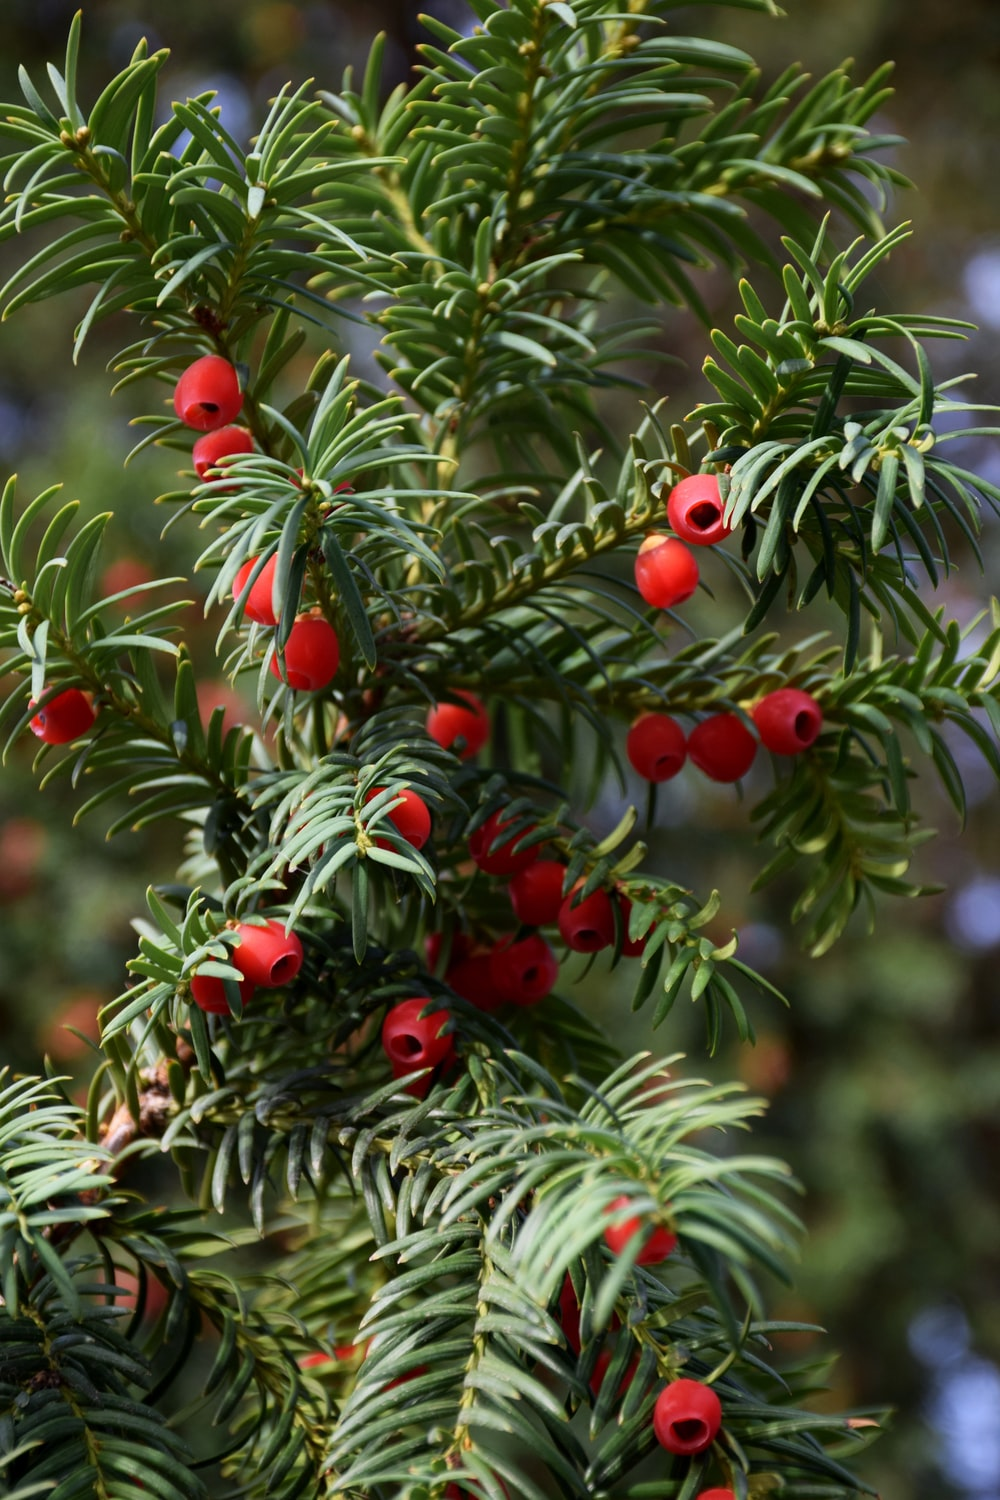 red round fruit on green tree